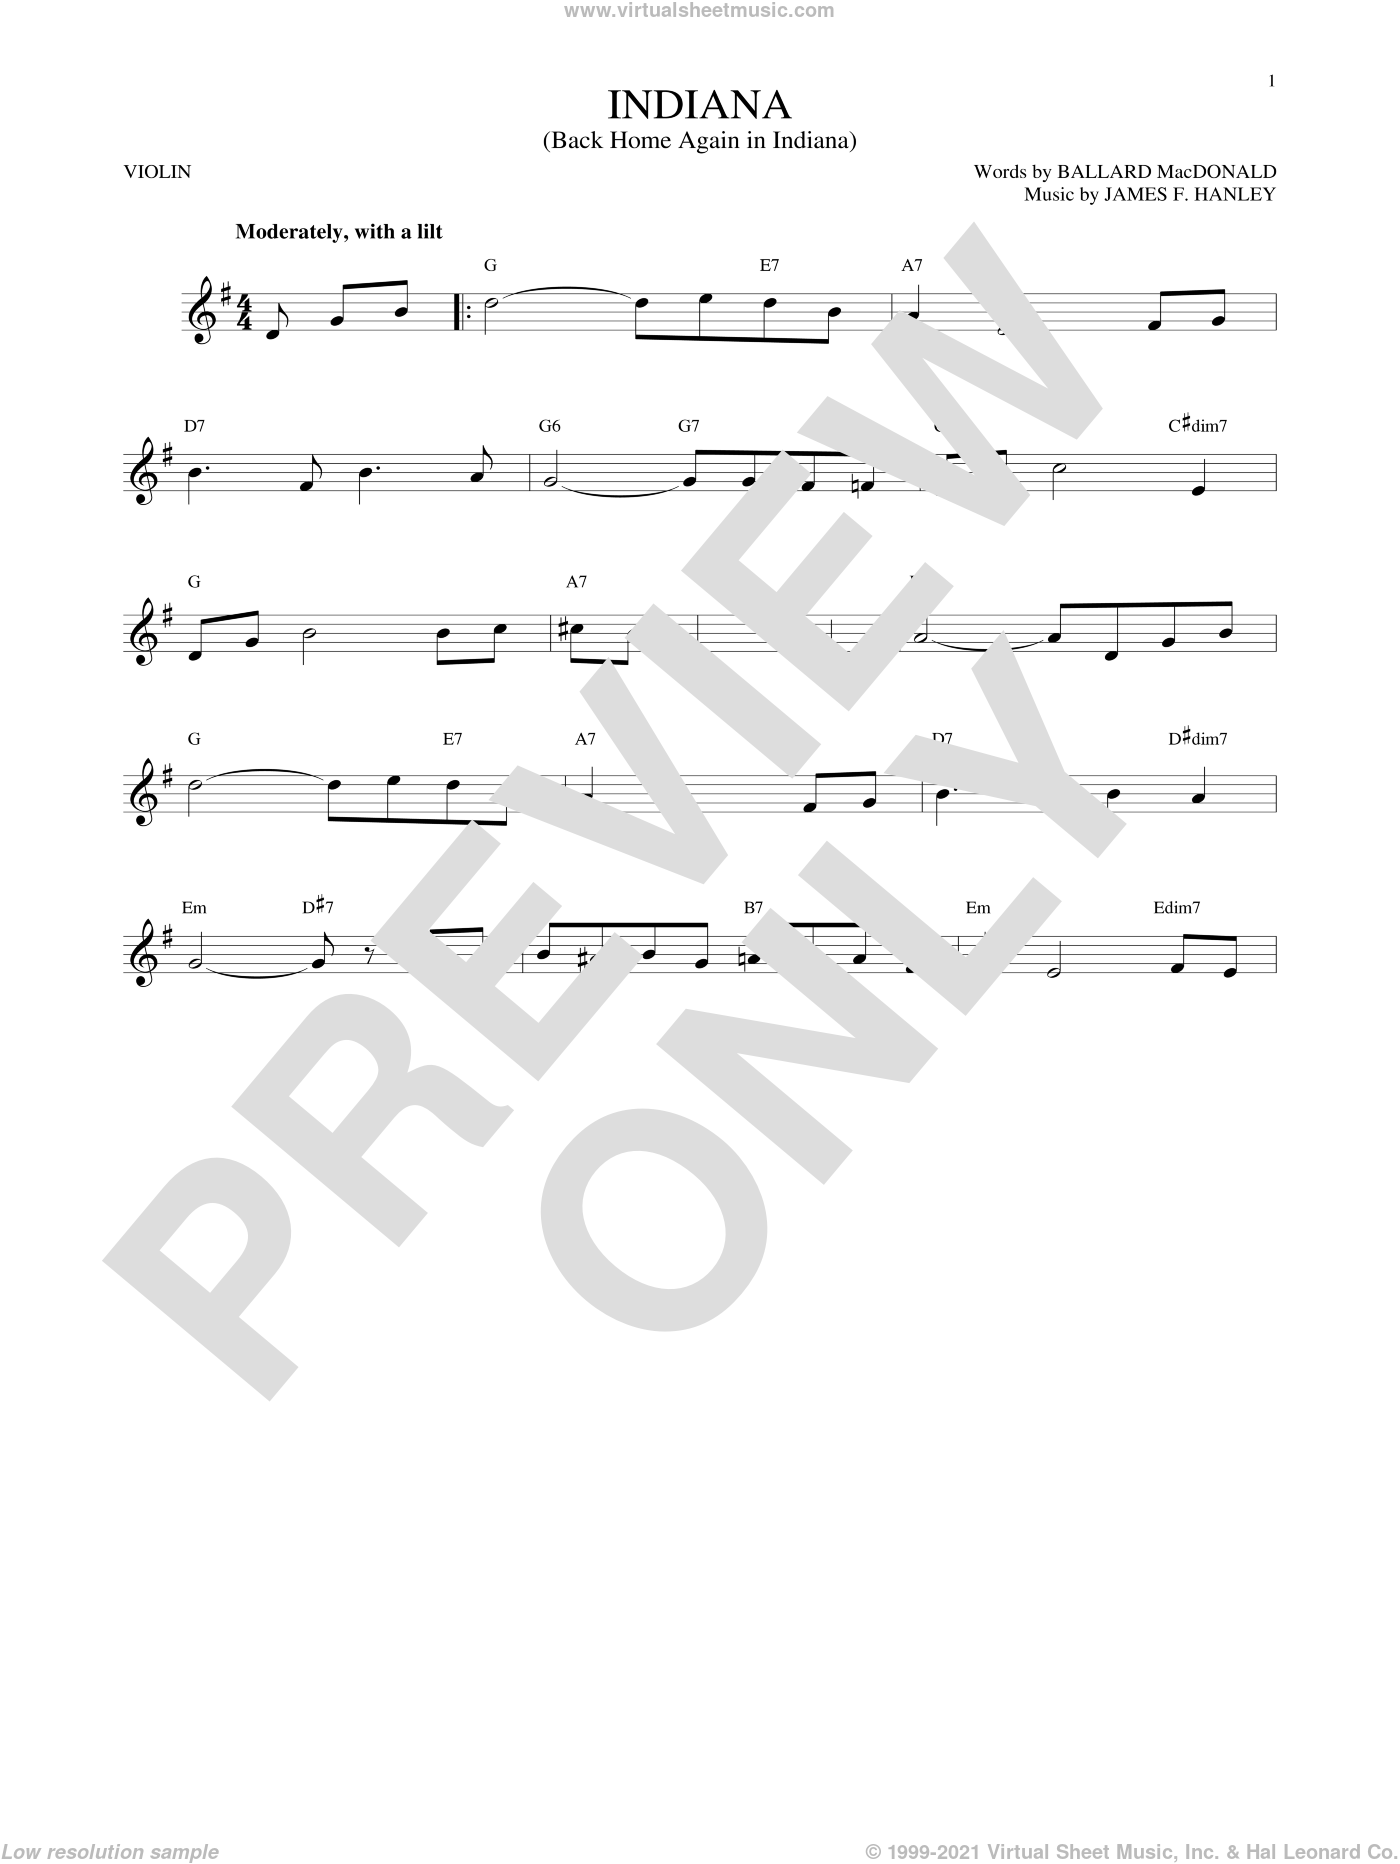 Indiana (Back Home Again In Indiana) sheet music for violin solo by James Hanley and Ballard MacDonald. Score Image Preview.